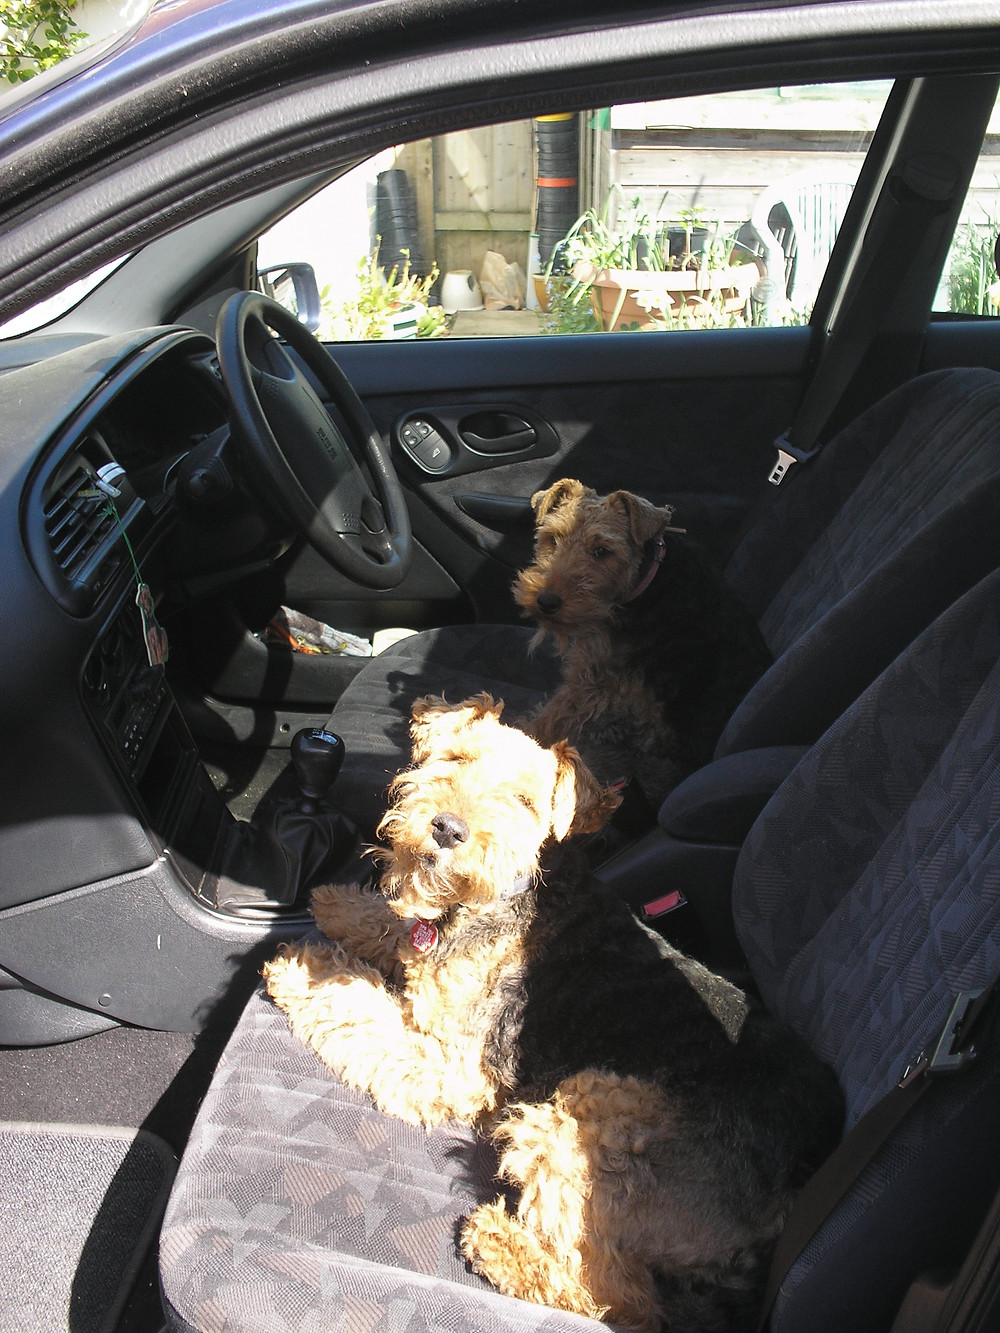 Dogs in car 001.JPG